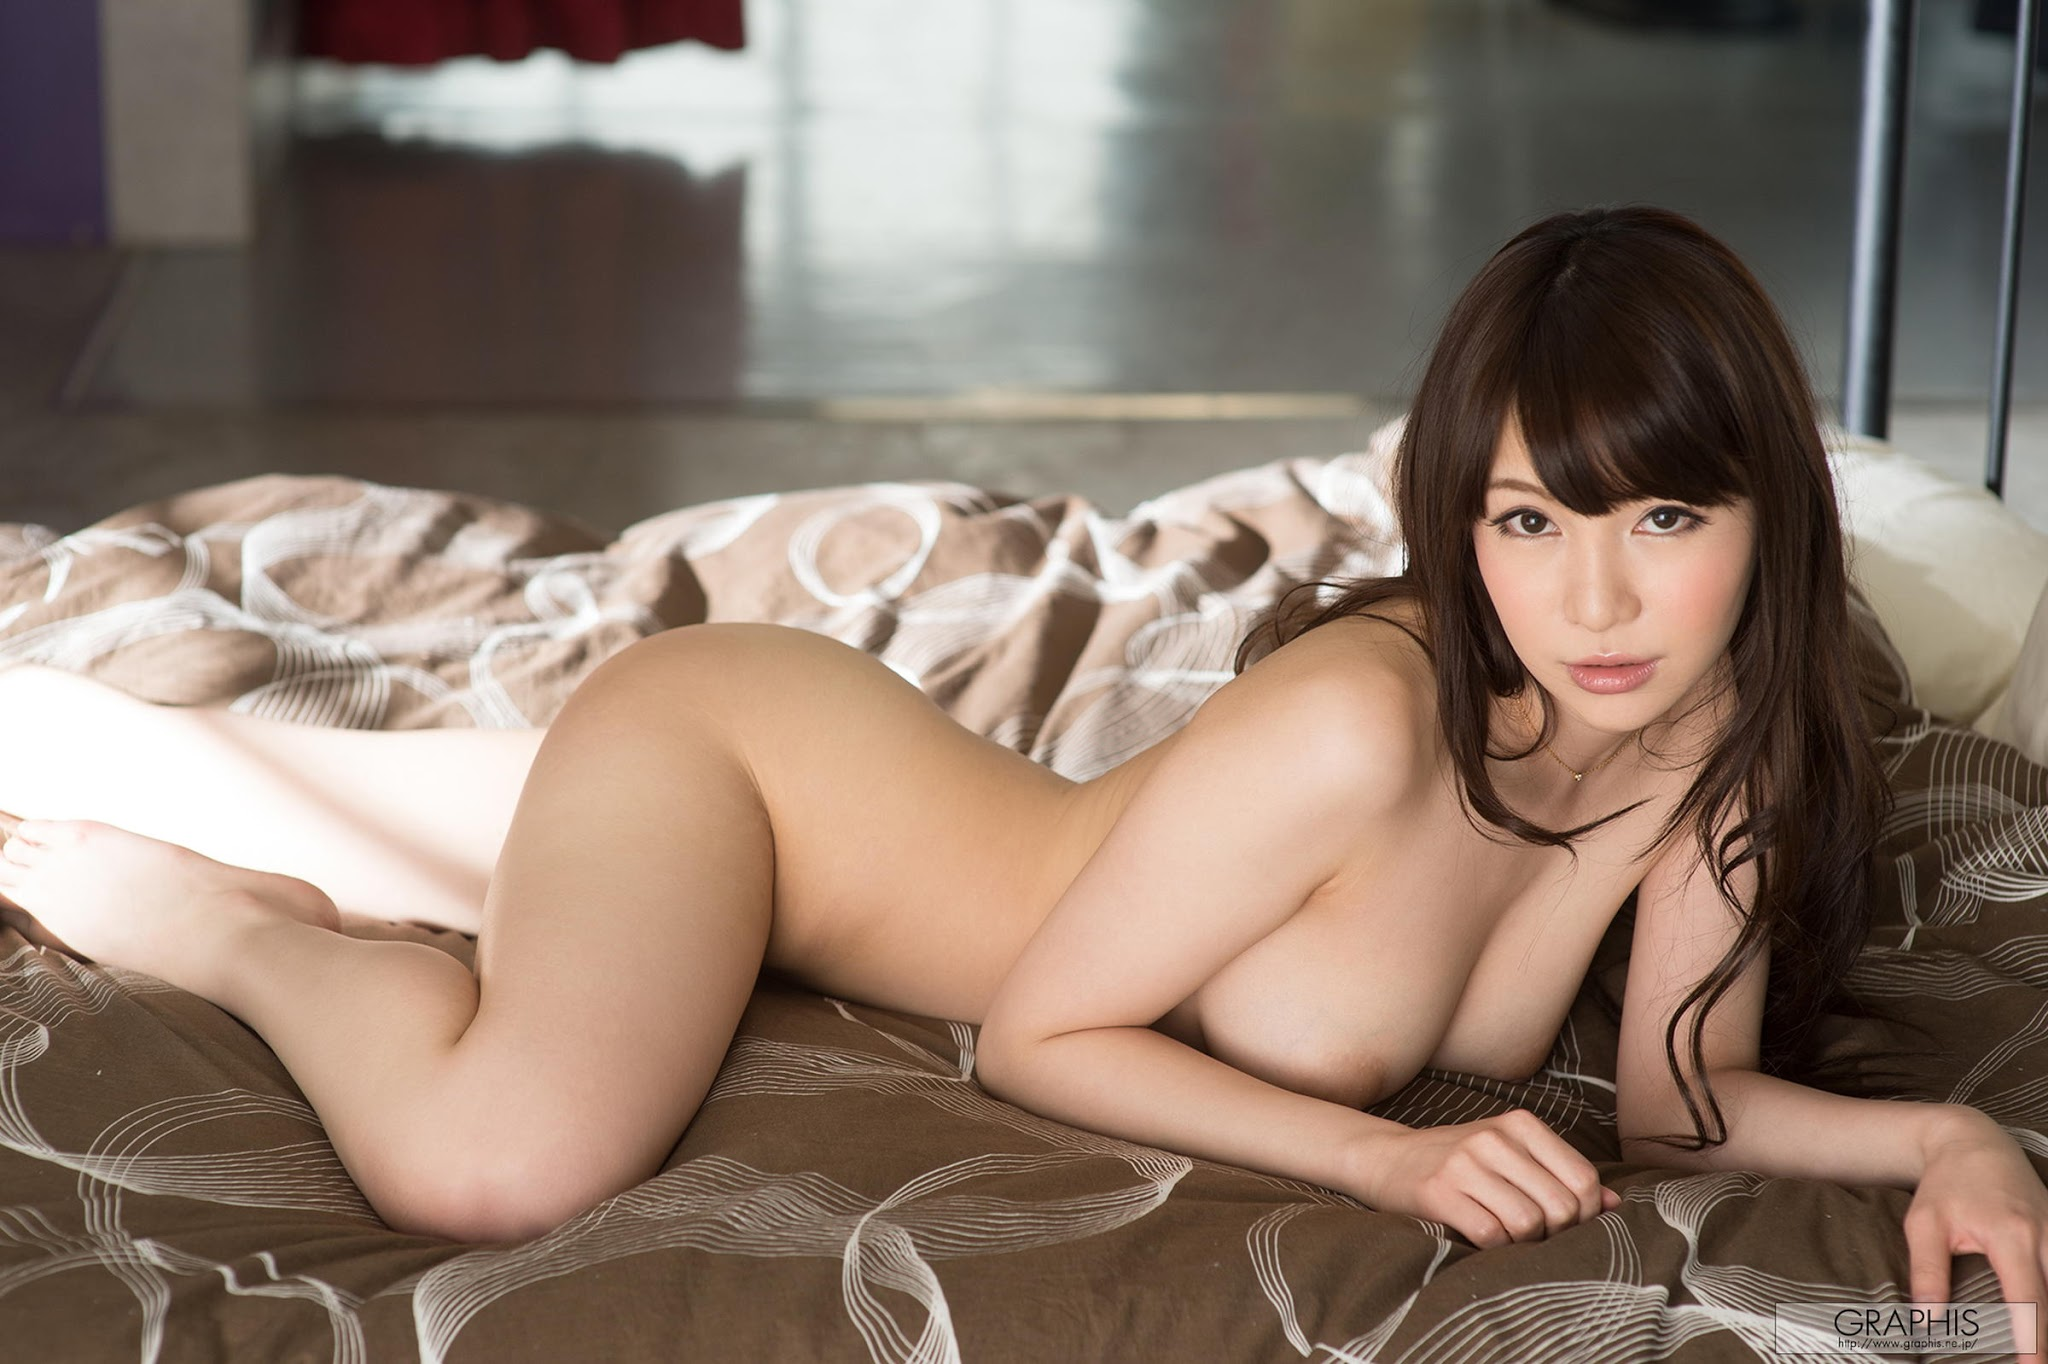 Aoi 葵 Nude Uncensored uHD Gallery @ Graphis Gals ...